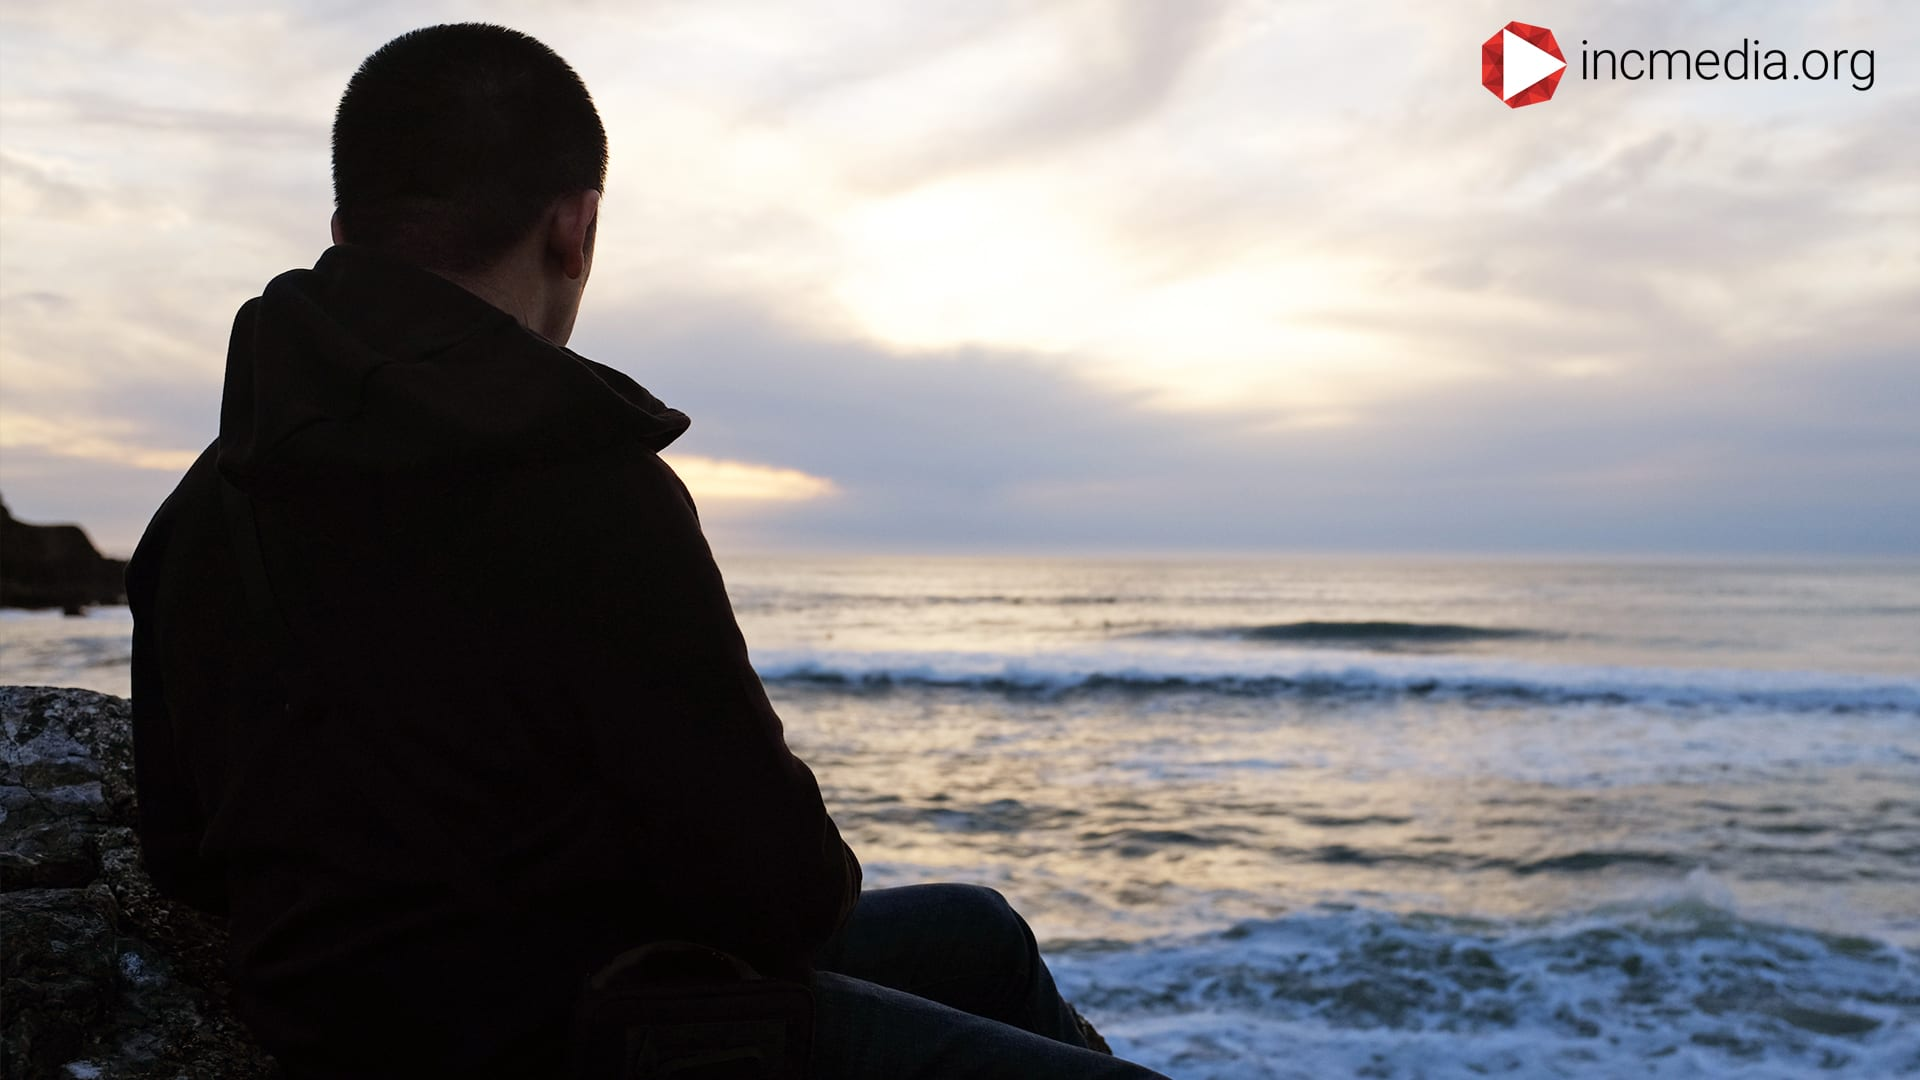 Man pondering looking out into the ocean.